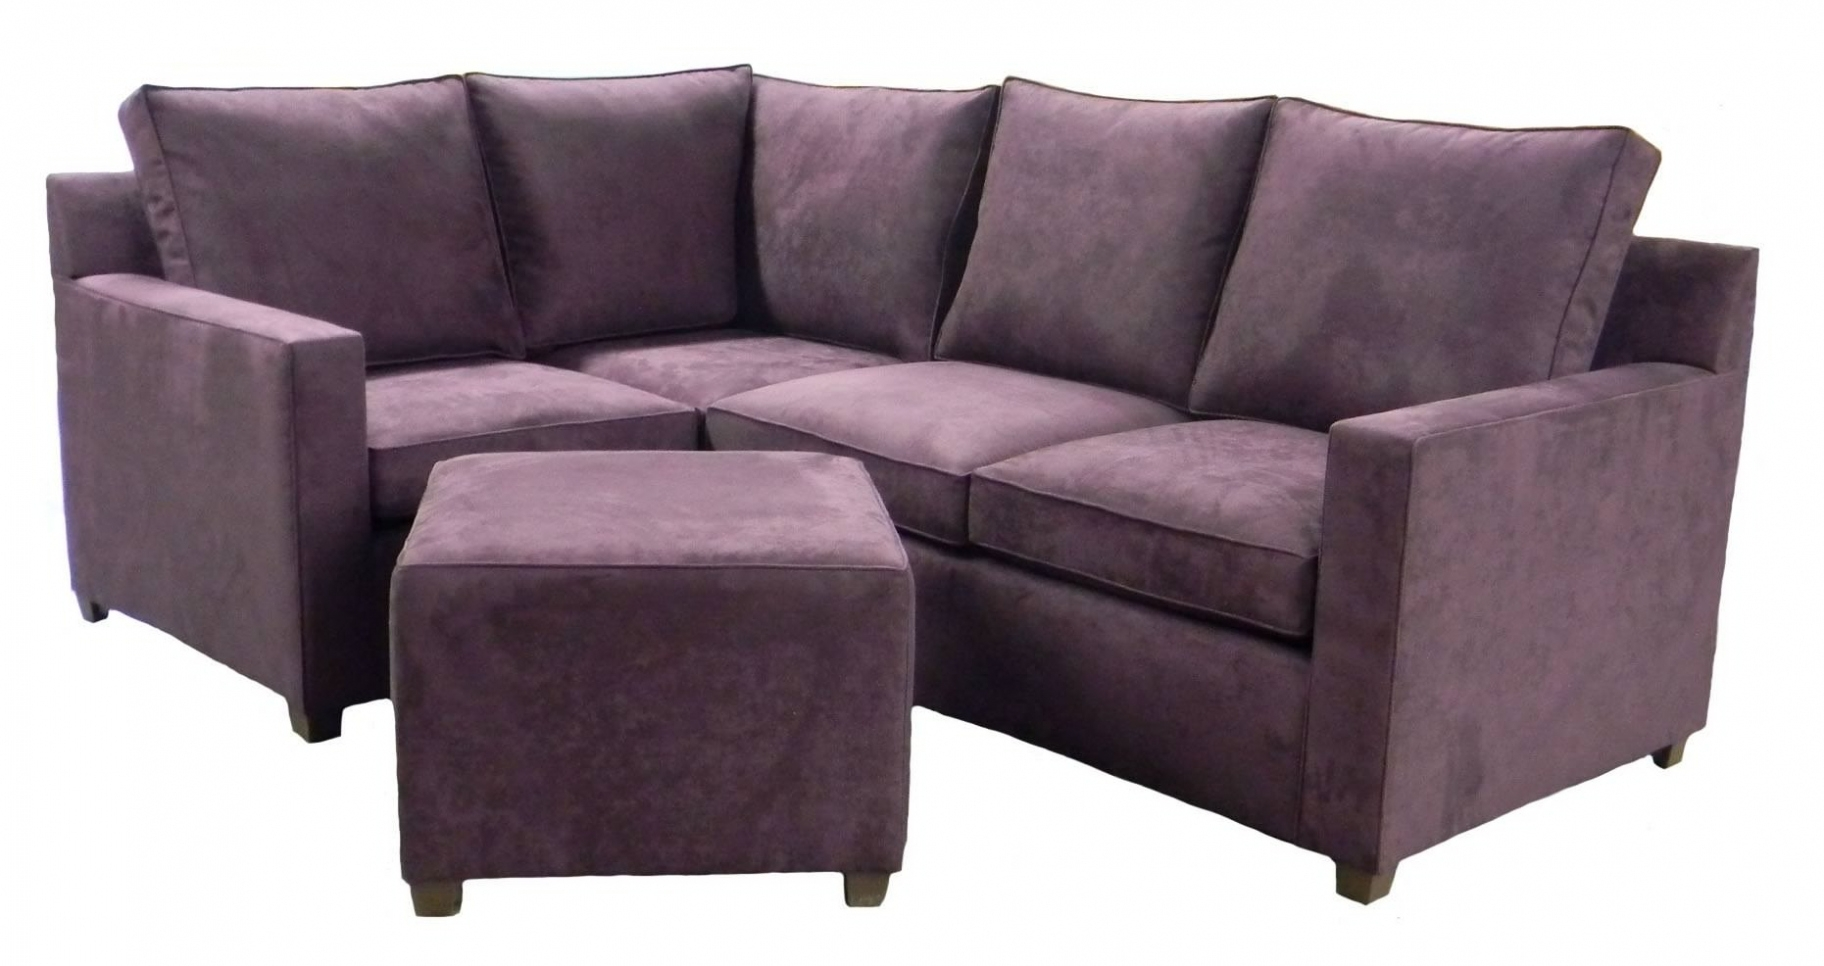 Furniture ~ Sectional Sofa Design: Apartment Size Sectional Sofa Bed within Apartment Size Sofas (Image 6 of 10)